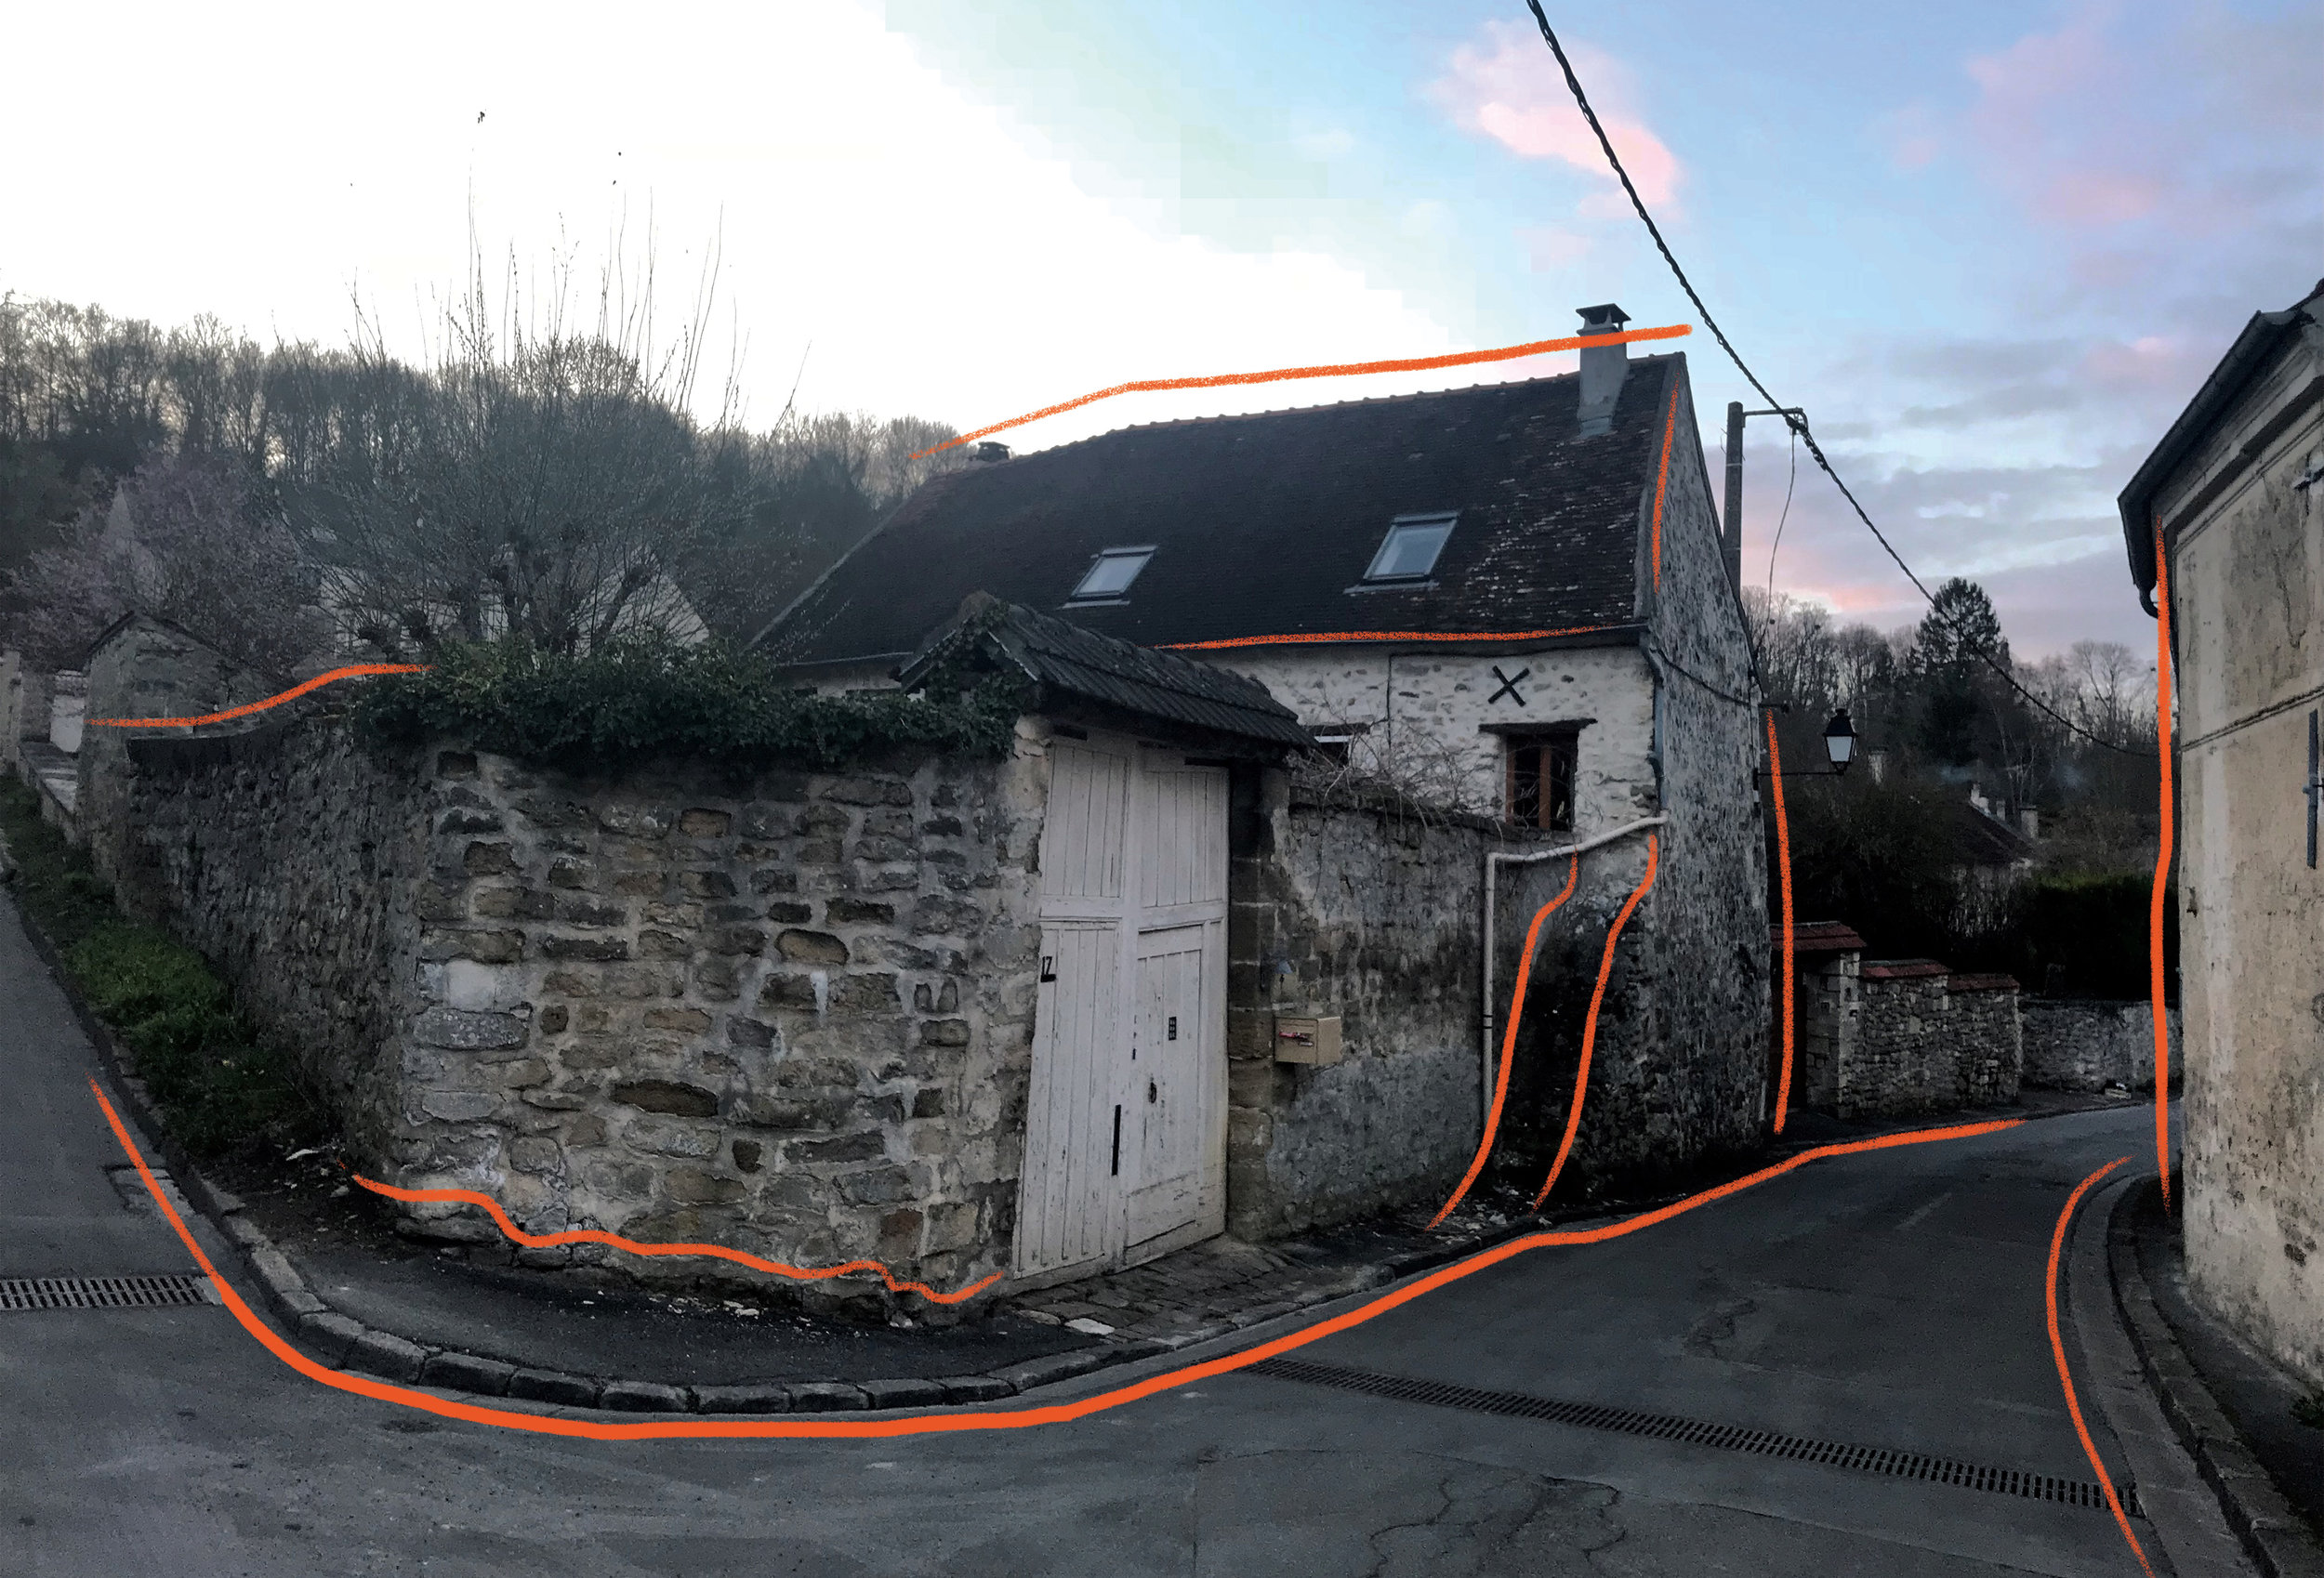 Photo taken near Chavonal in Auvers-sur-Oise with curves highlighted